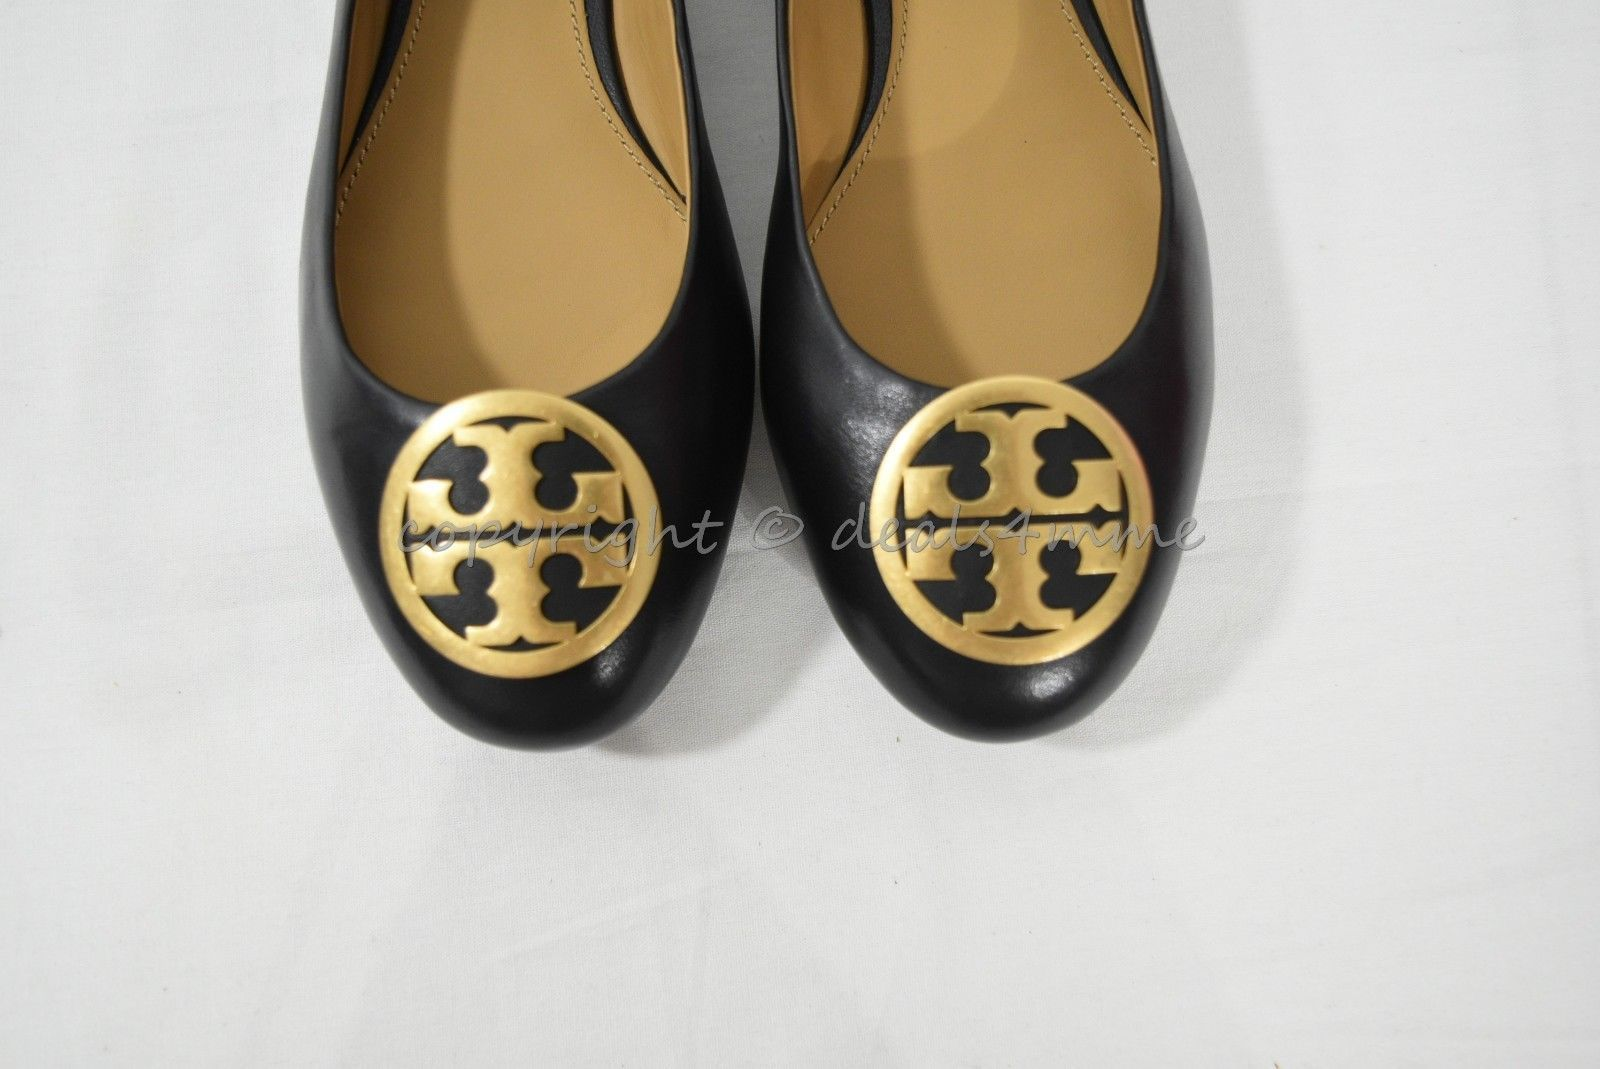 NIB Tory Burch Style 52785 Benton Ballet Flat Shoes /Flats in Black Napa Leather